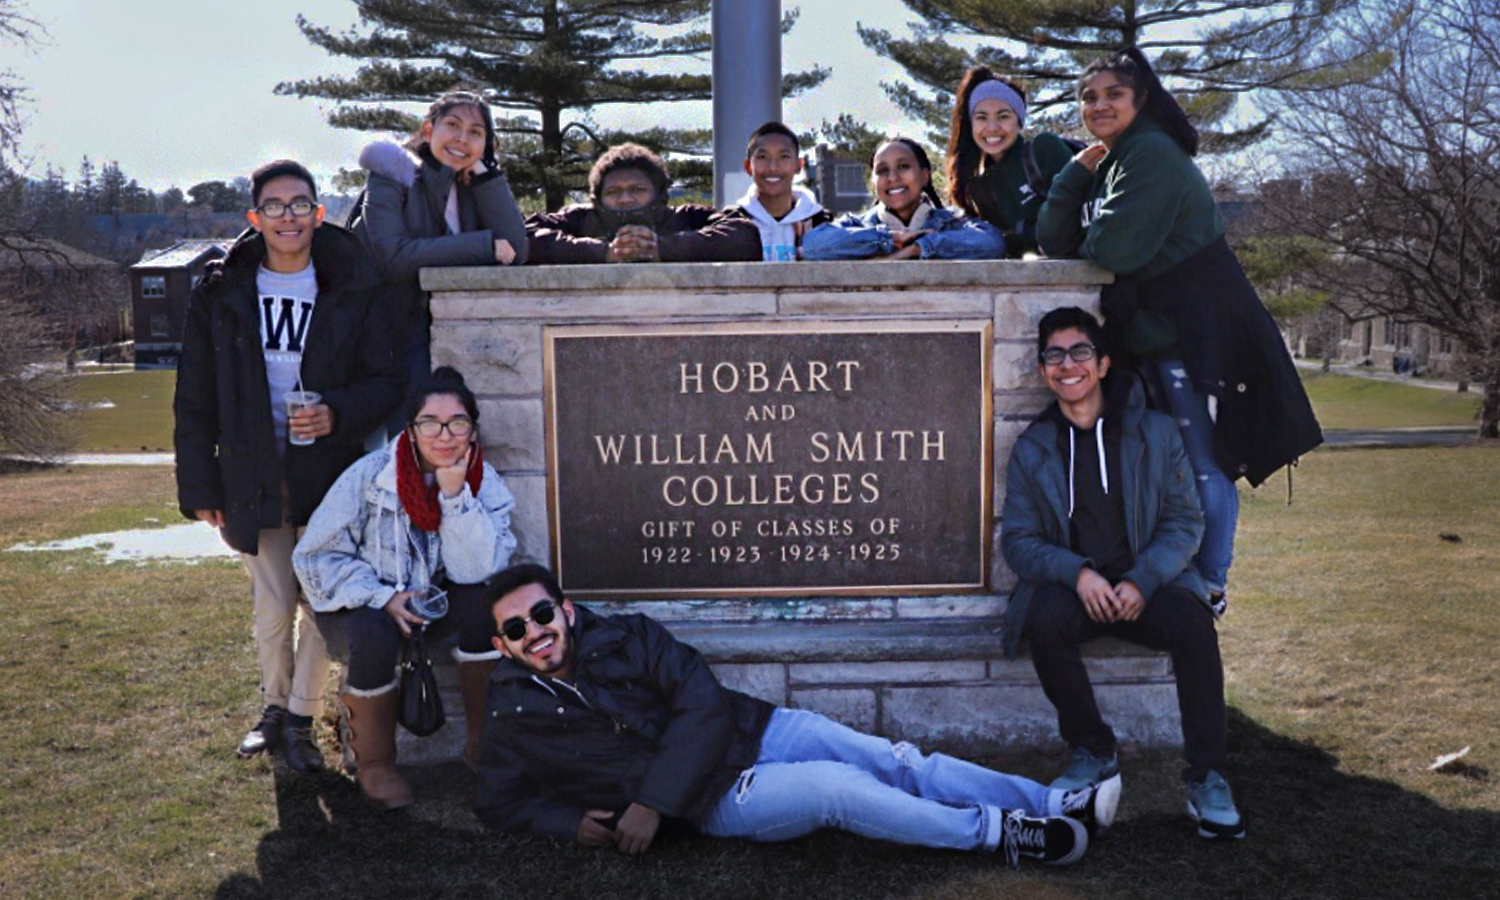 Members of HWS Posse 5 gather for a group photo on campus. In 2012, HWS entered into a partnership with the Posse Foundation, one of the most successful college access and youth leadership development programs in the country.